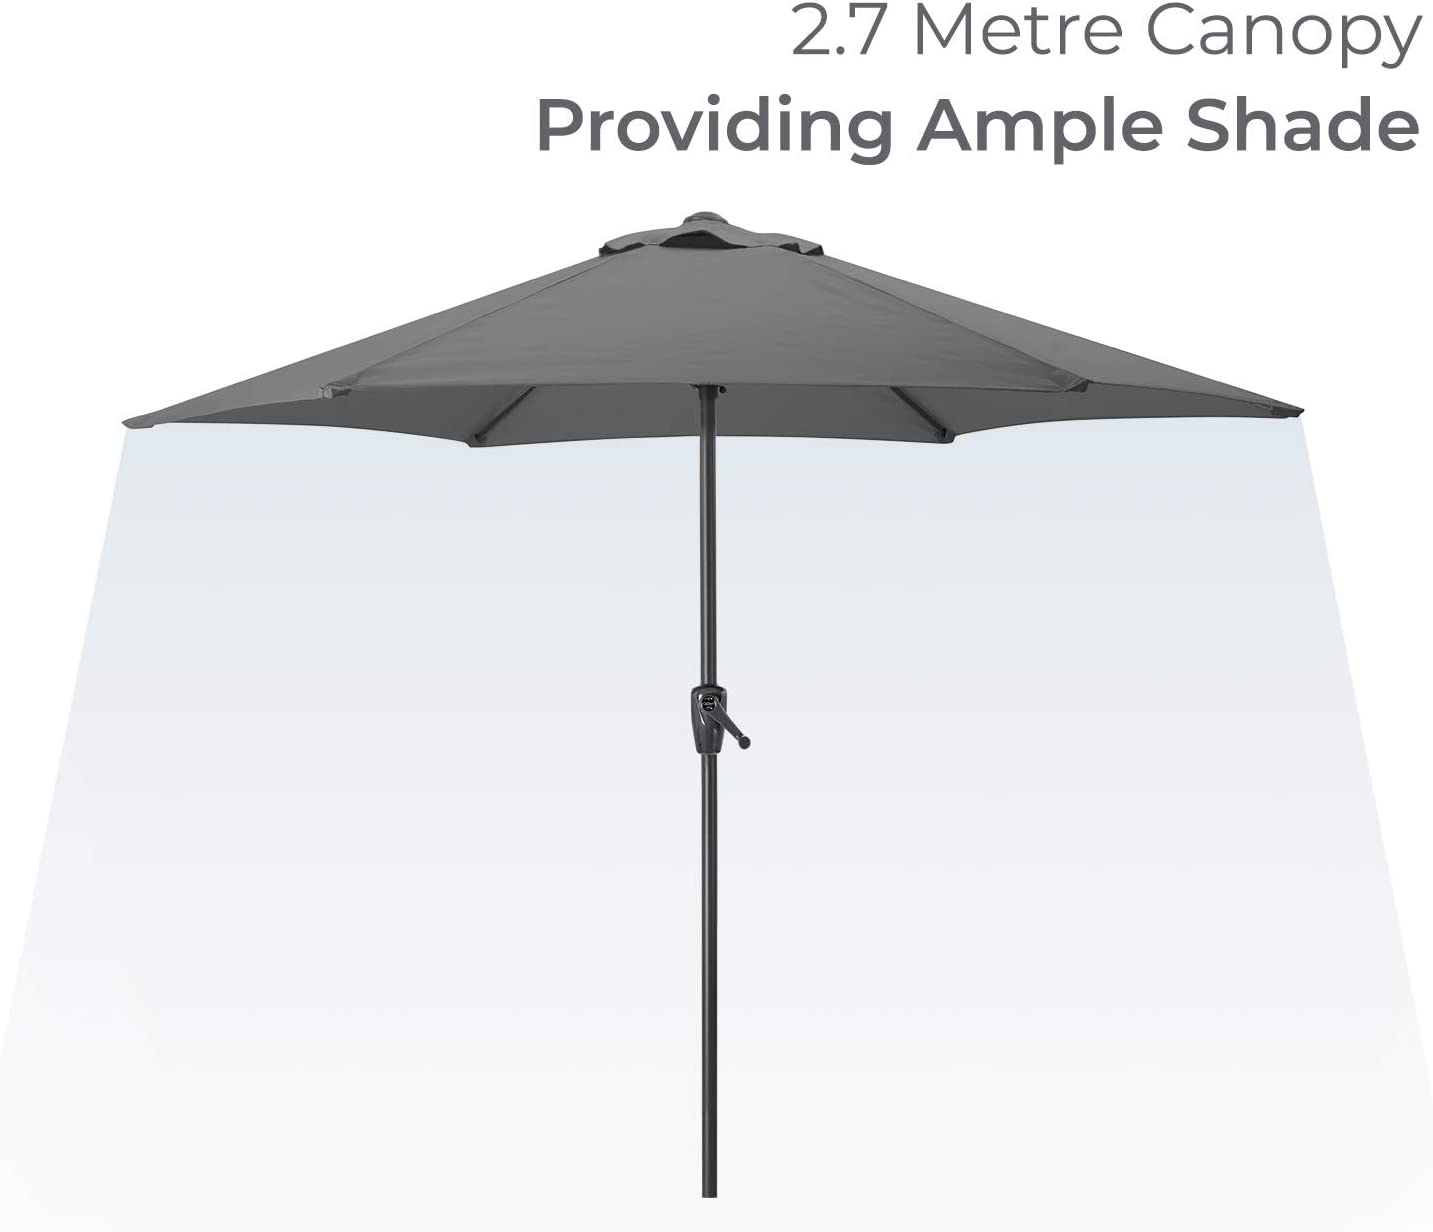 JVSISM Umbrella Base Weight Cantilever or Outdoor Patio Umbrella Stand Replaces Ugly Sand Bags